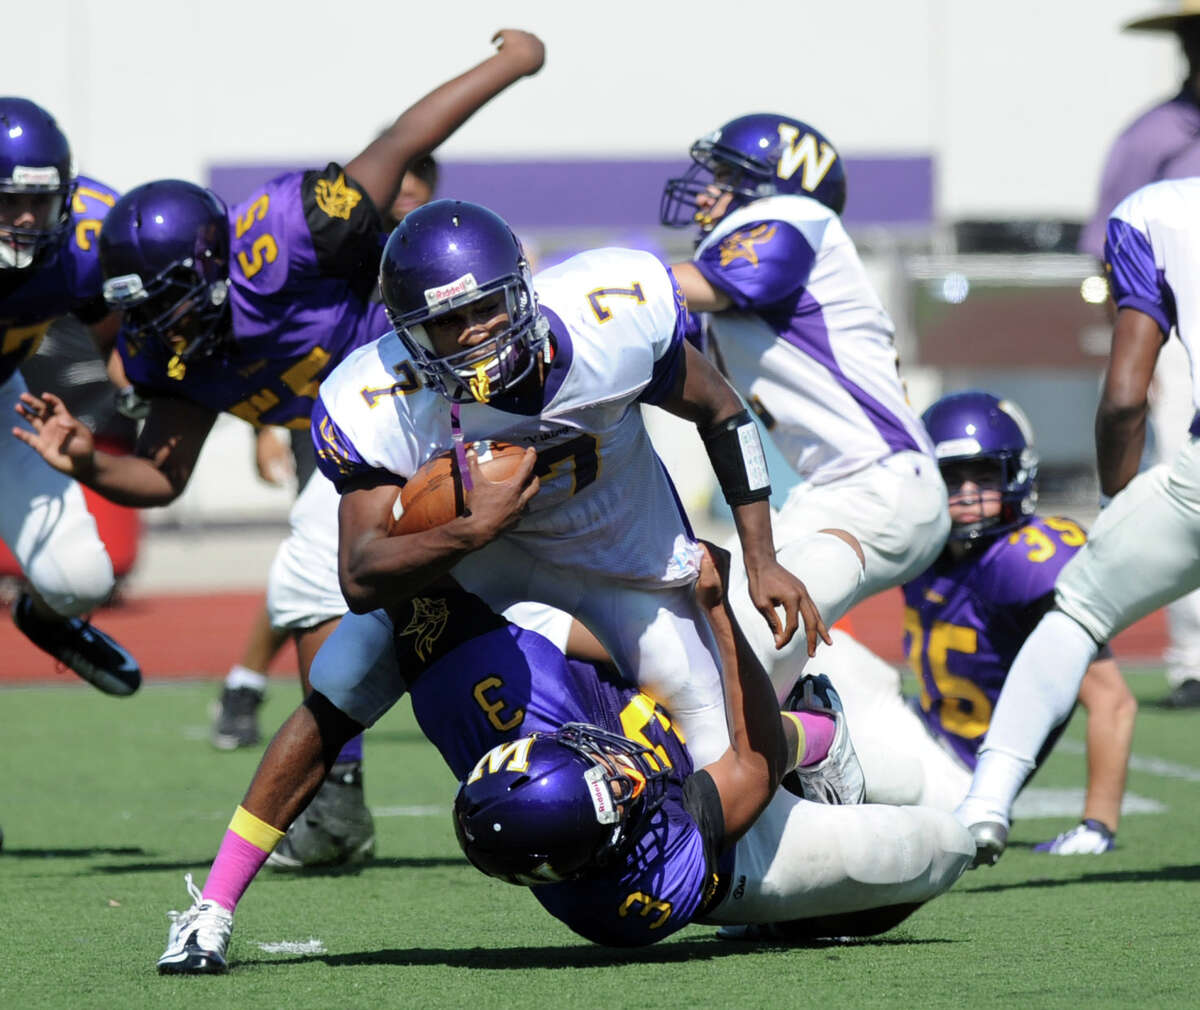 Davell Cotterell carries the ball during Saturday's spring football game at Westhill High School on June 16, 2012.